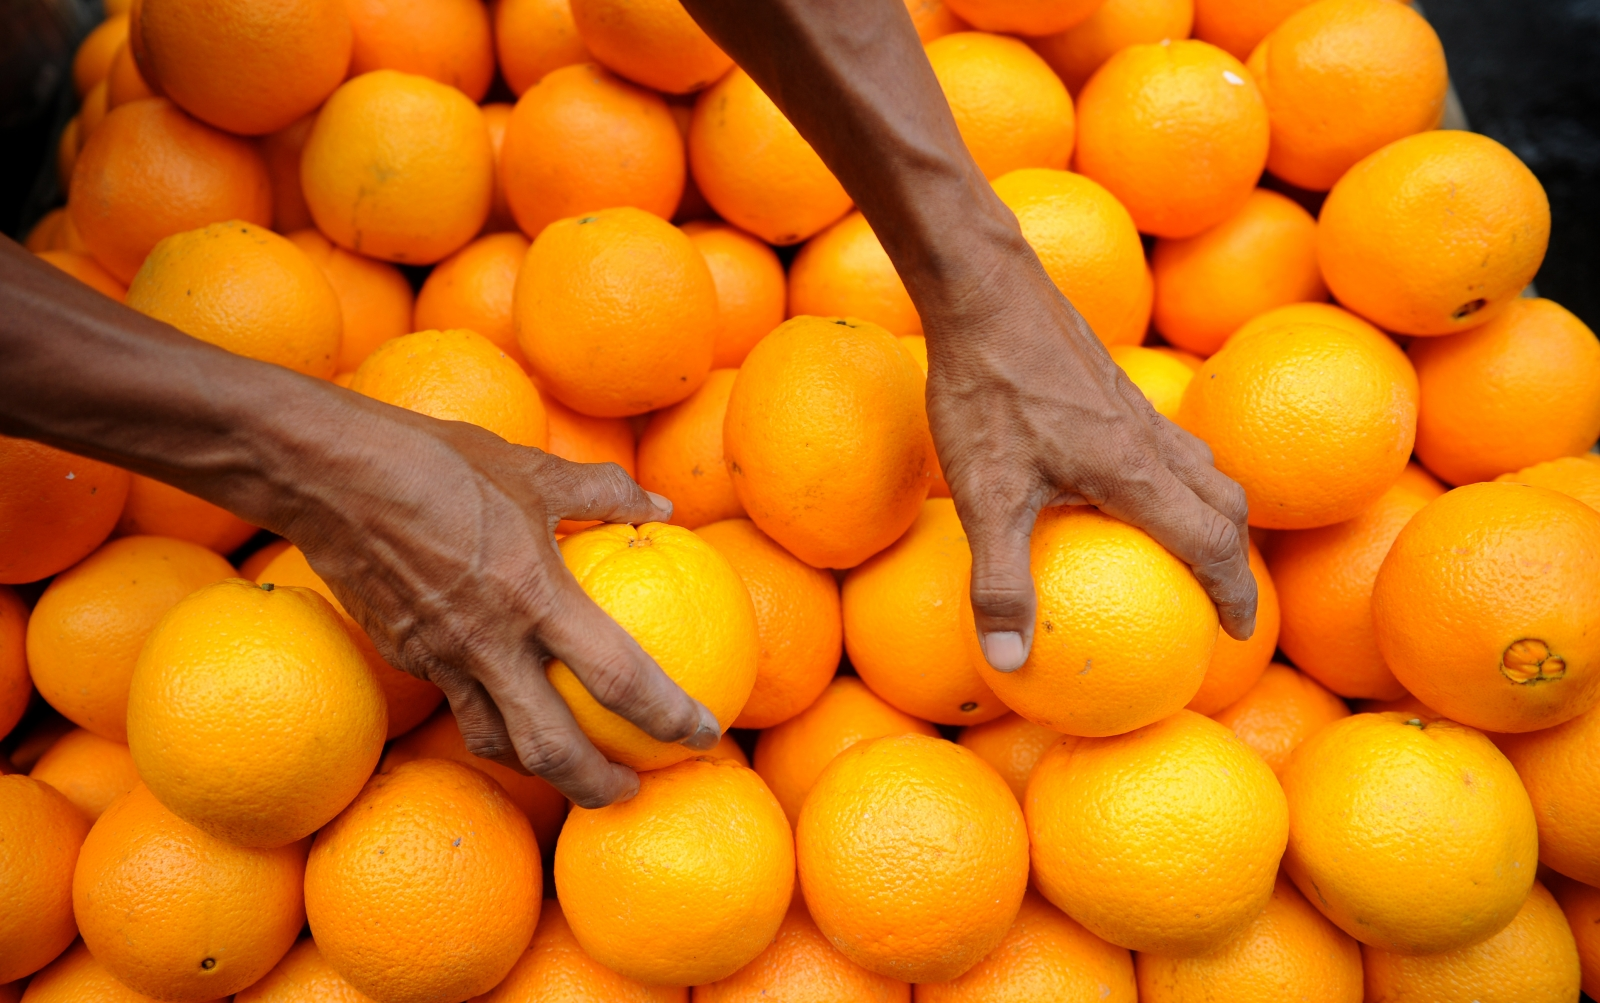 Man pelted to death with oranges during row on farm in Limpopo, South Africa